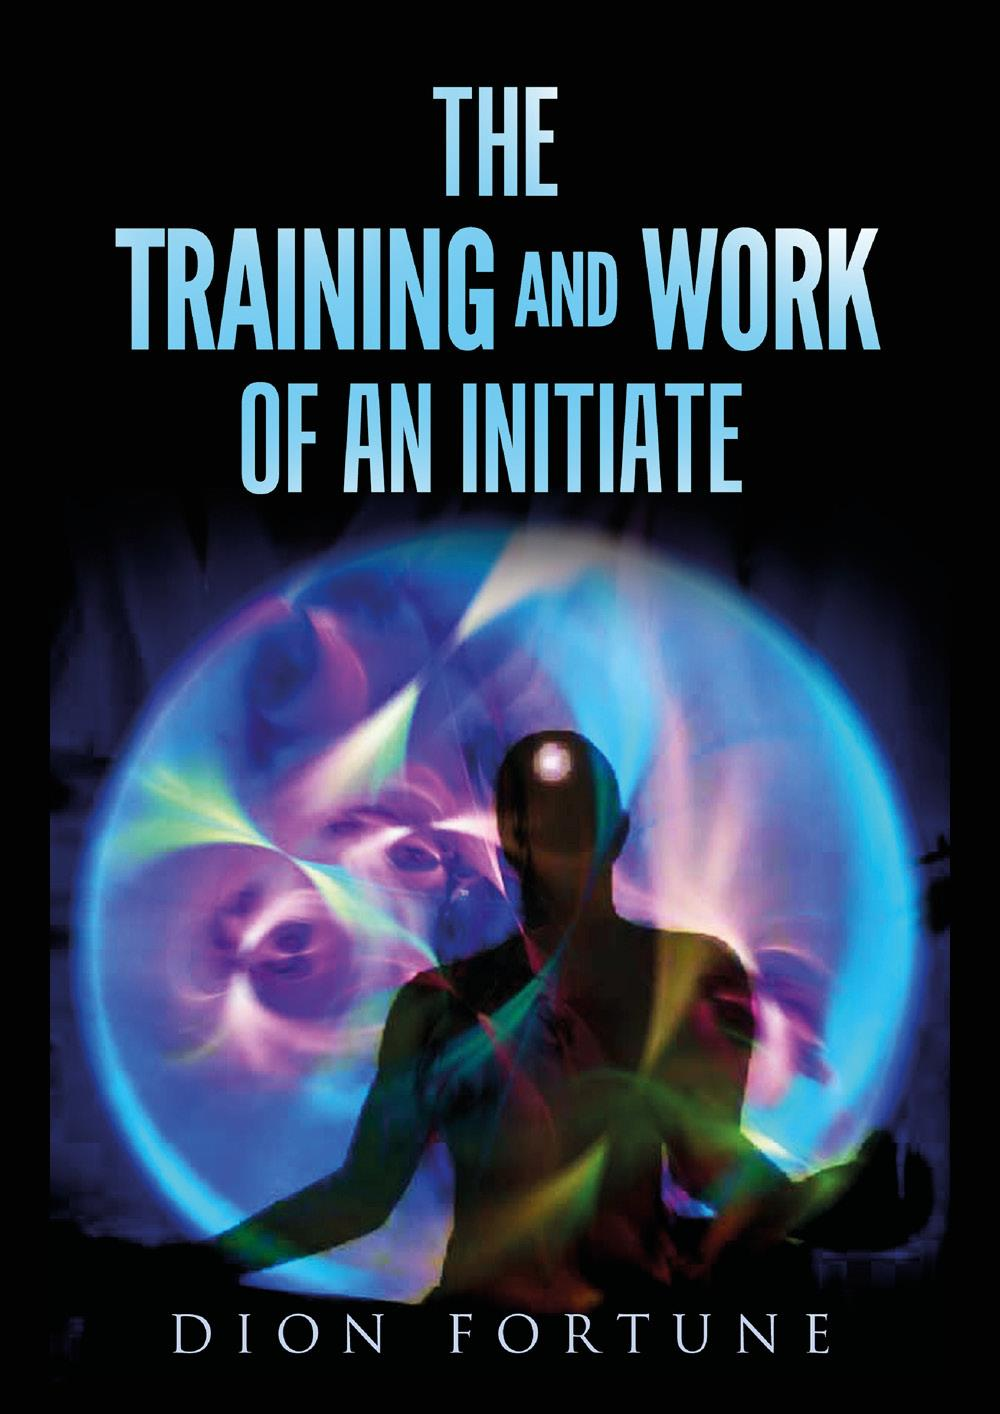 The training and work of an initiate